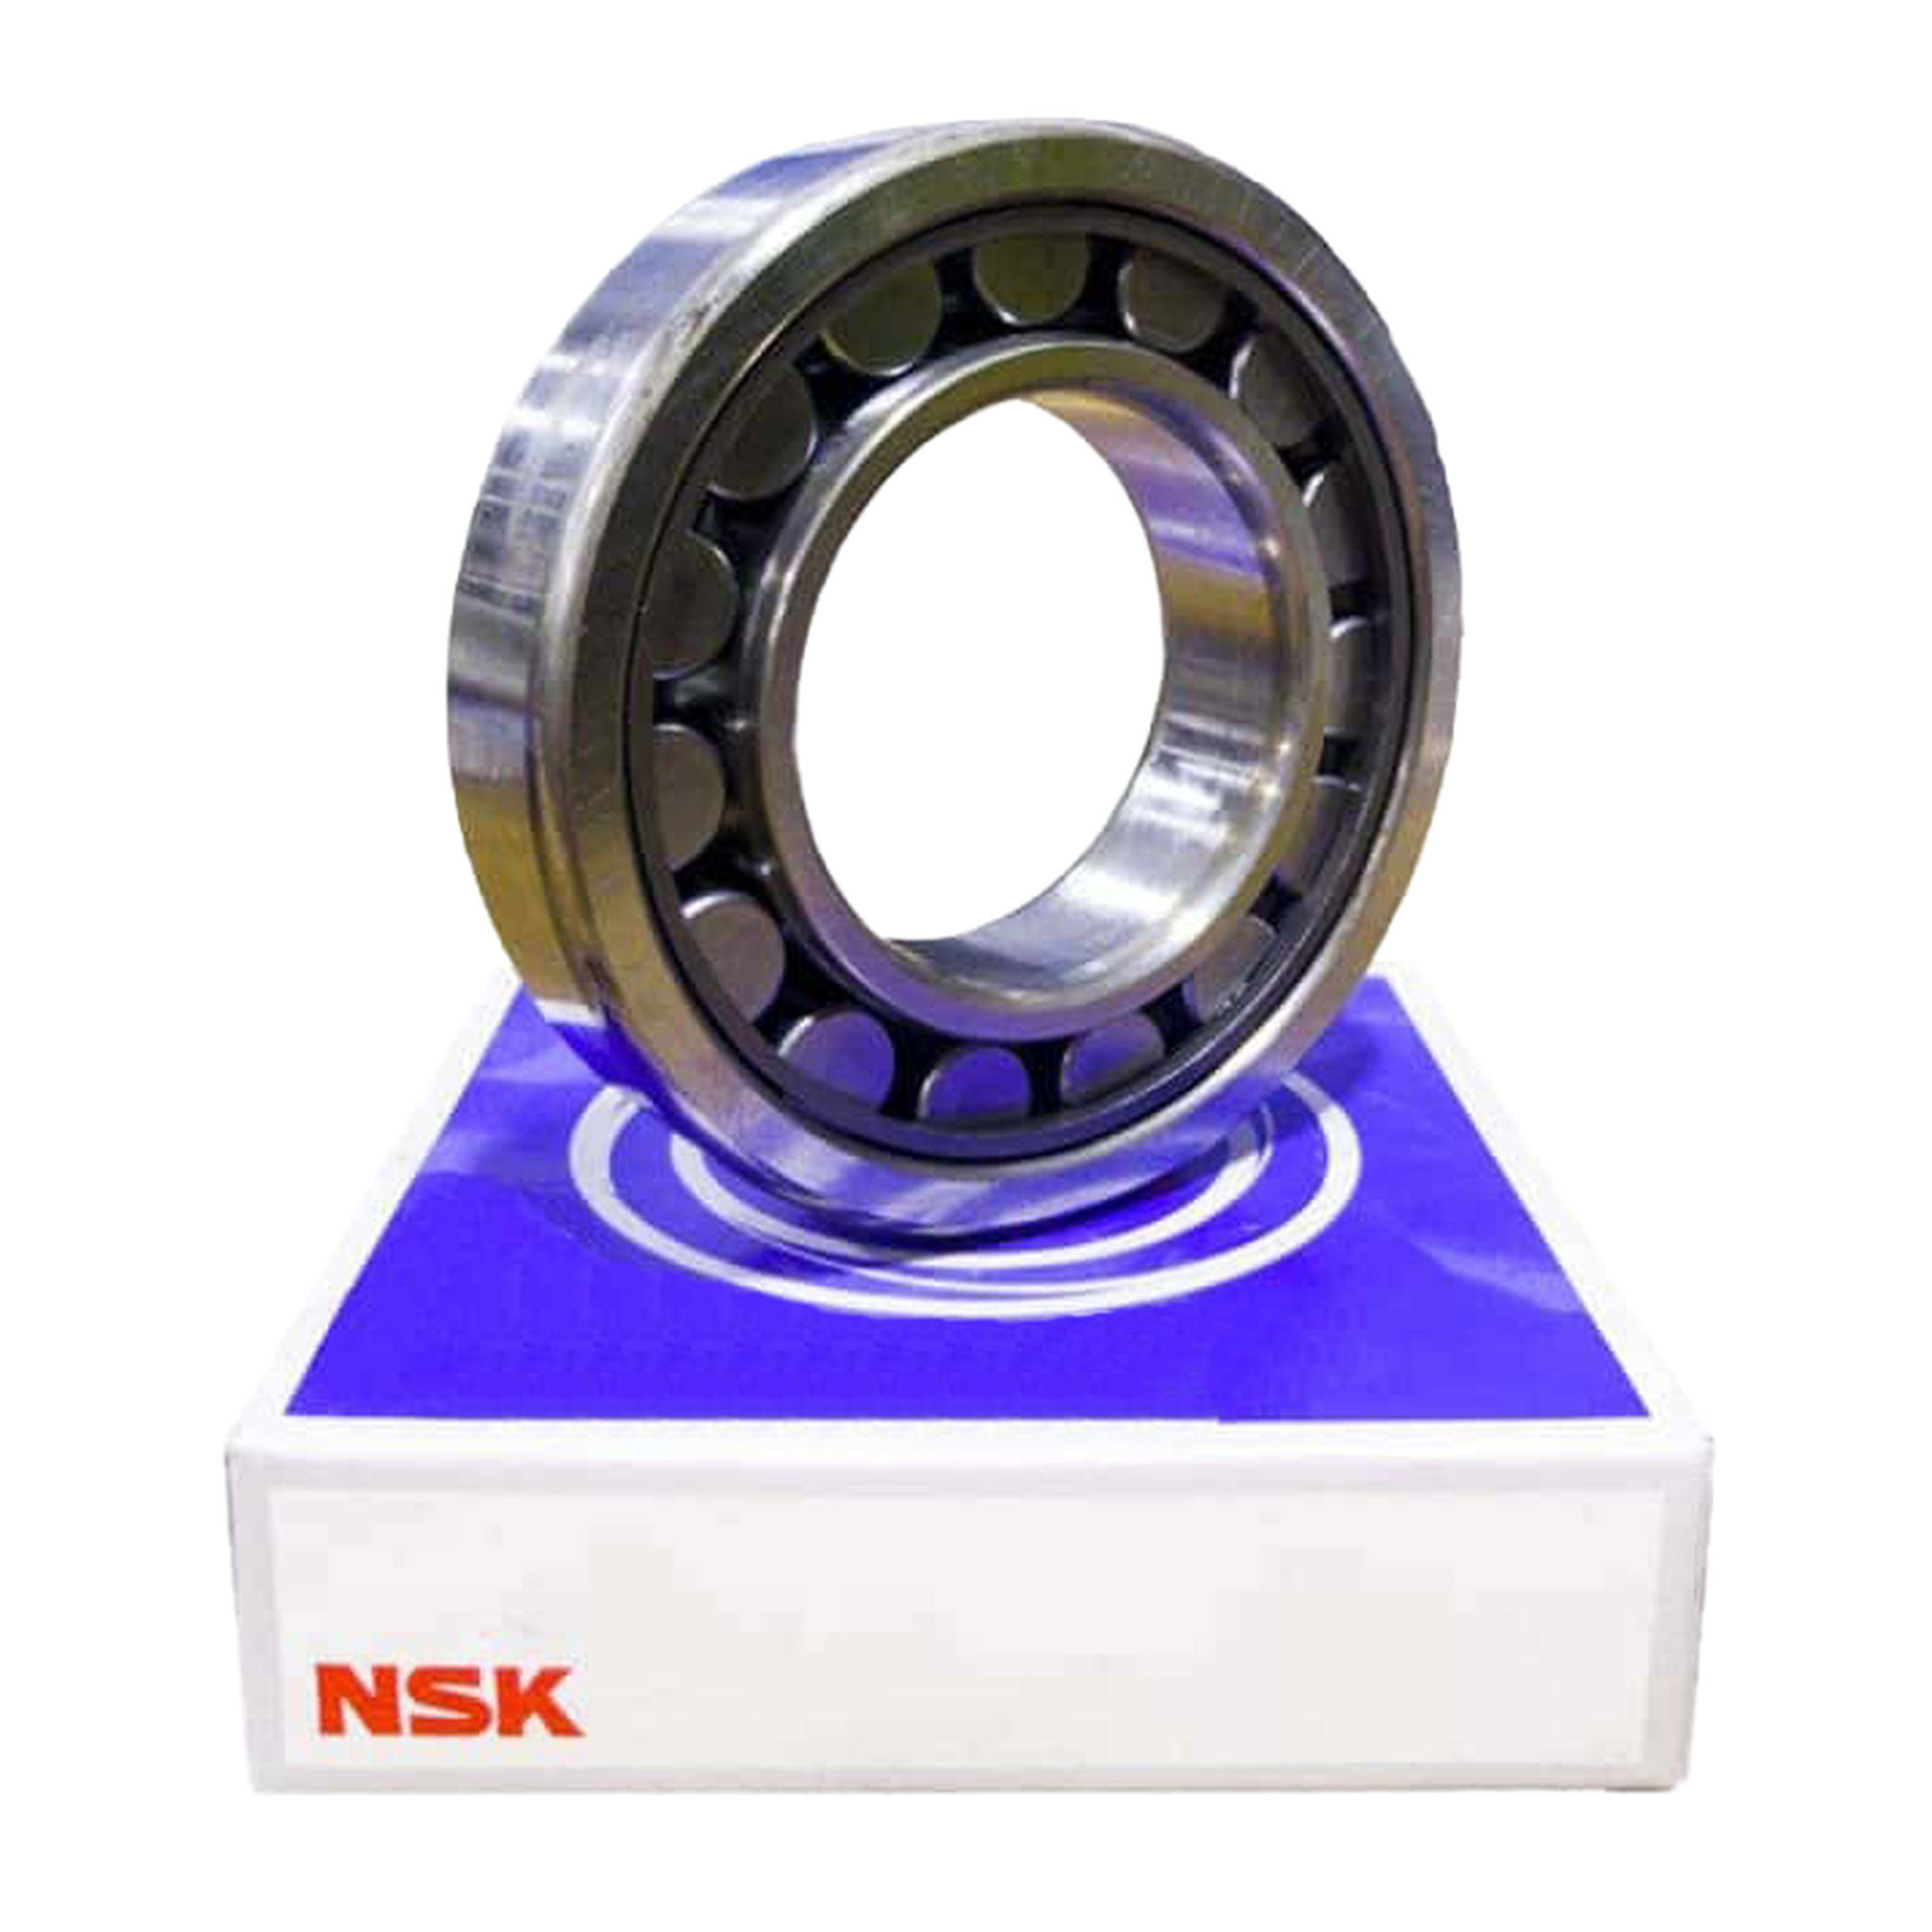 NU2206 W NSK Cylindrical Roller Bearing